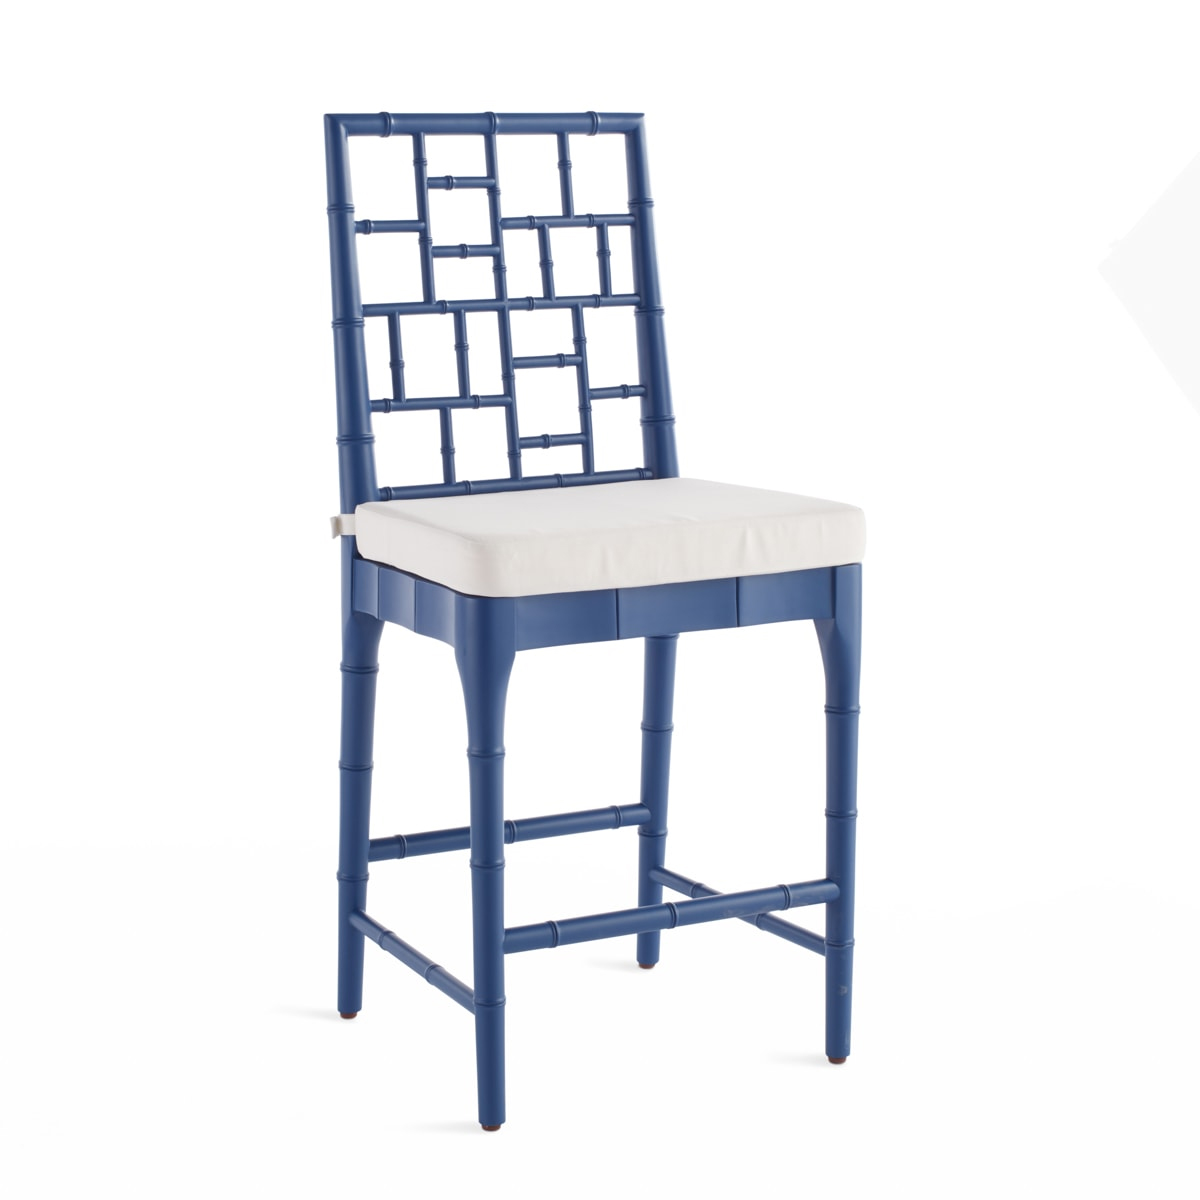 wisteria bar stool.jpg